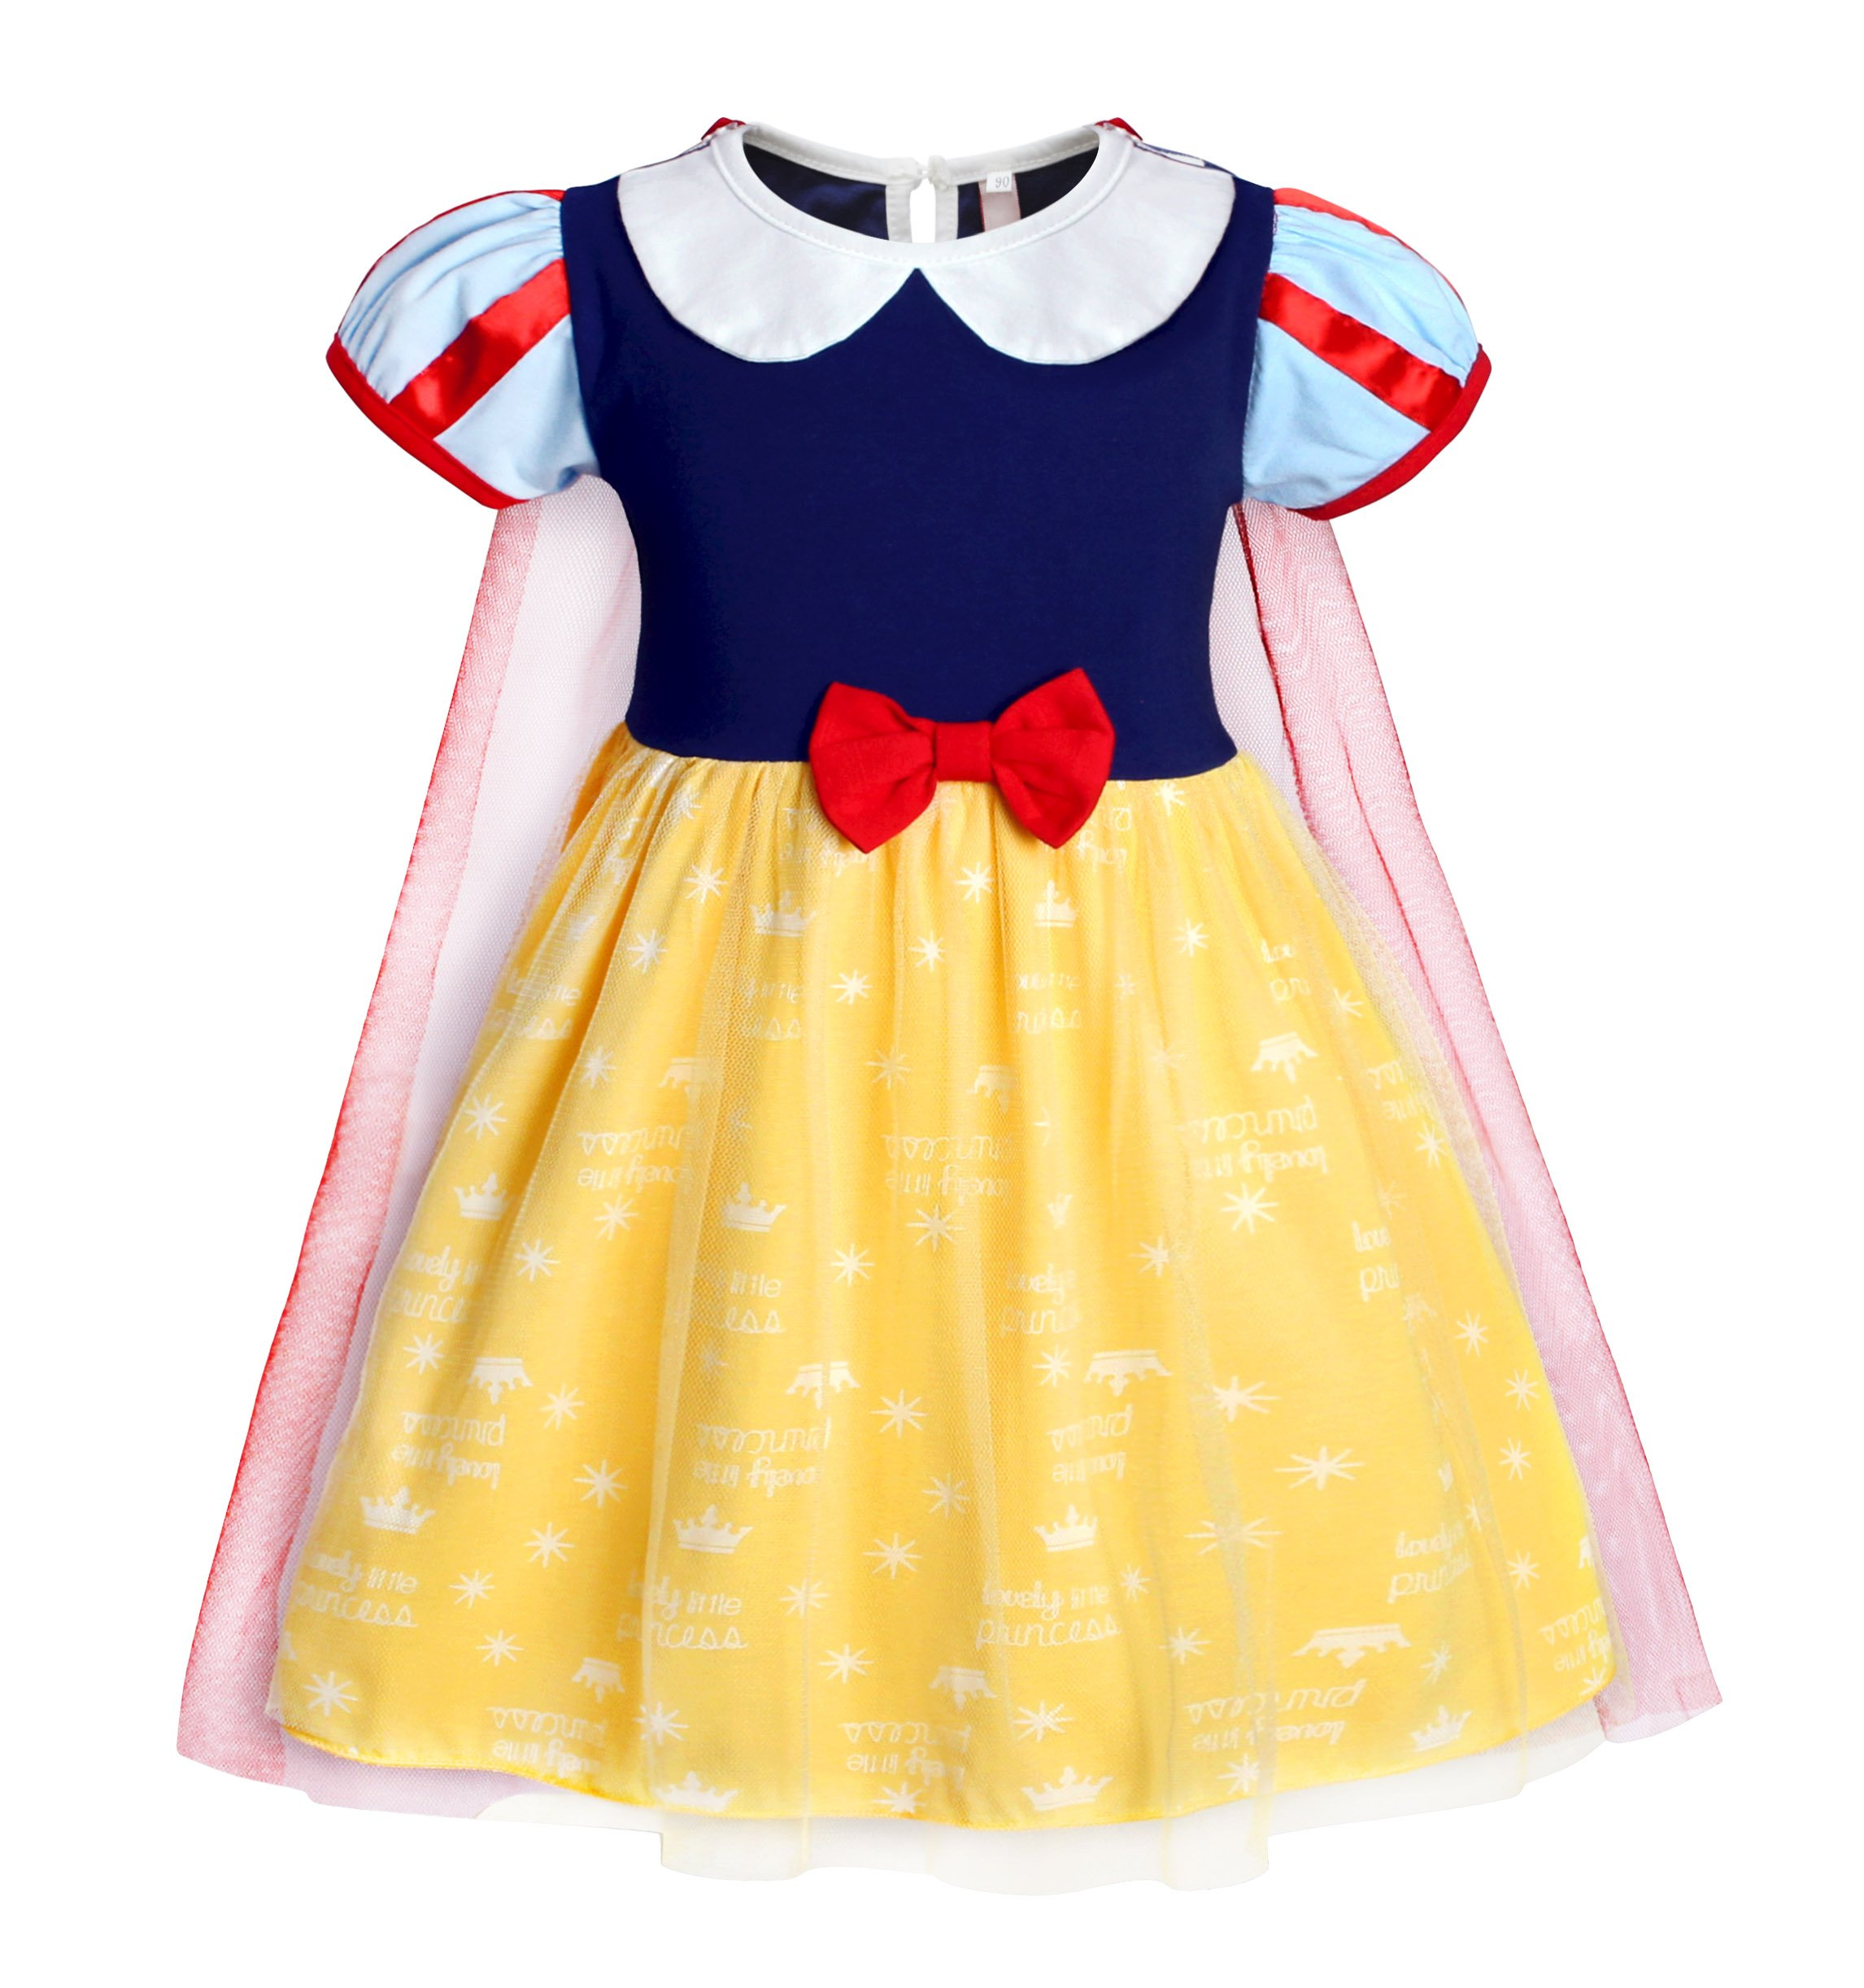 Jurebecia Baby Girls Snow White Dress Princess Dress up Toddler Nightgowns with Tulle Cape Size 2T